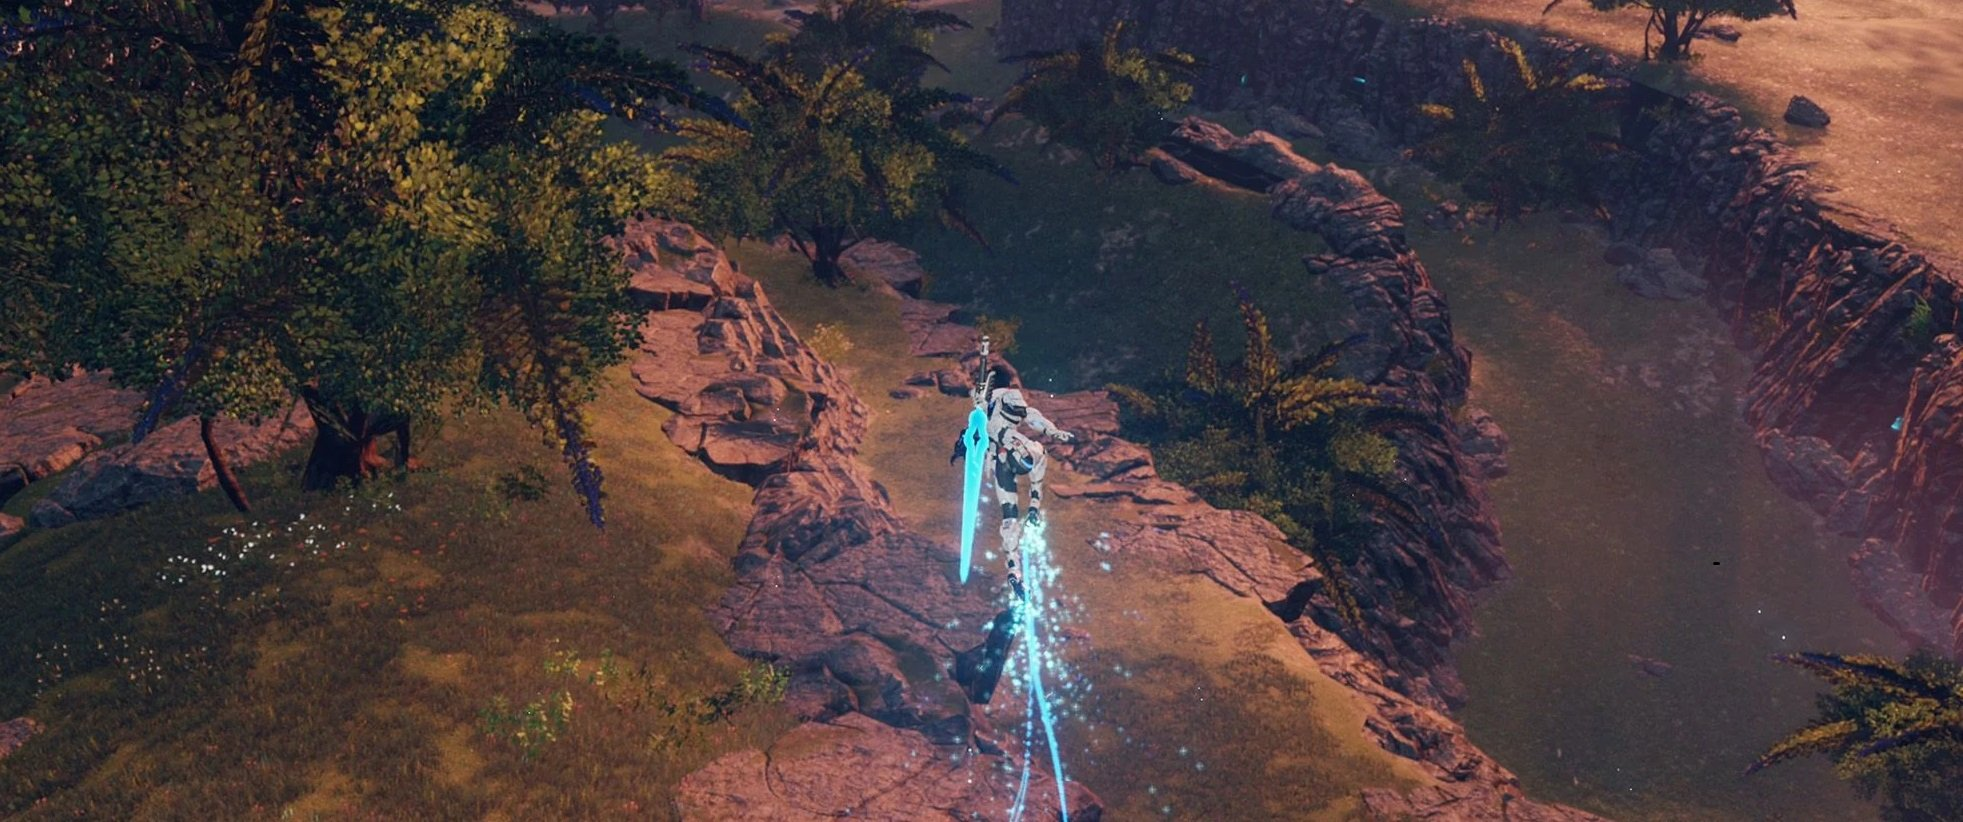 Phantasy Star Online 2: New Genesis has a lot of potential, based on the beta screenshot